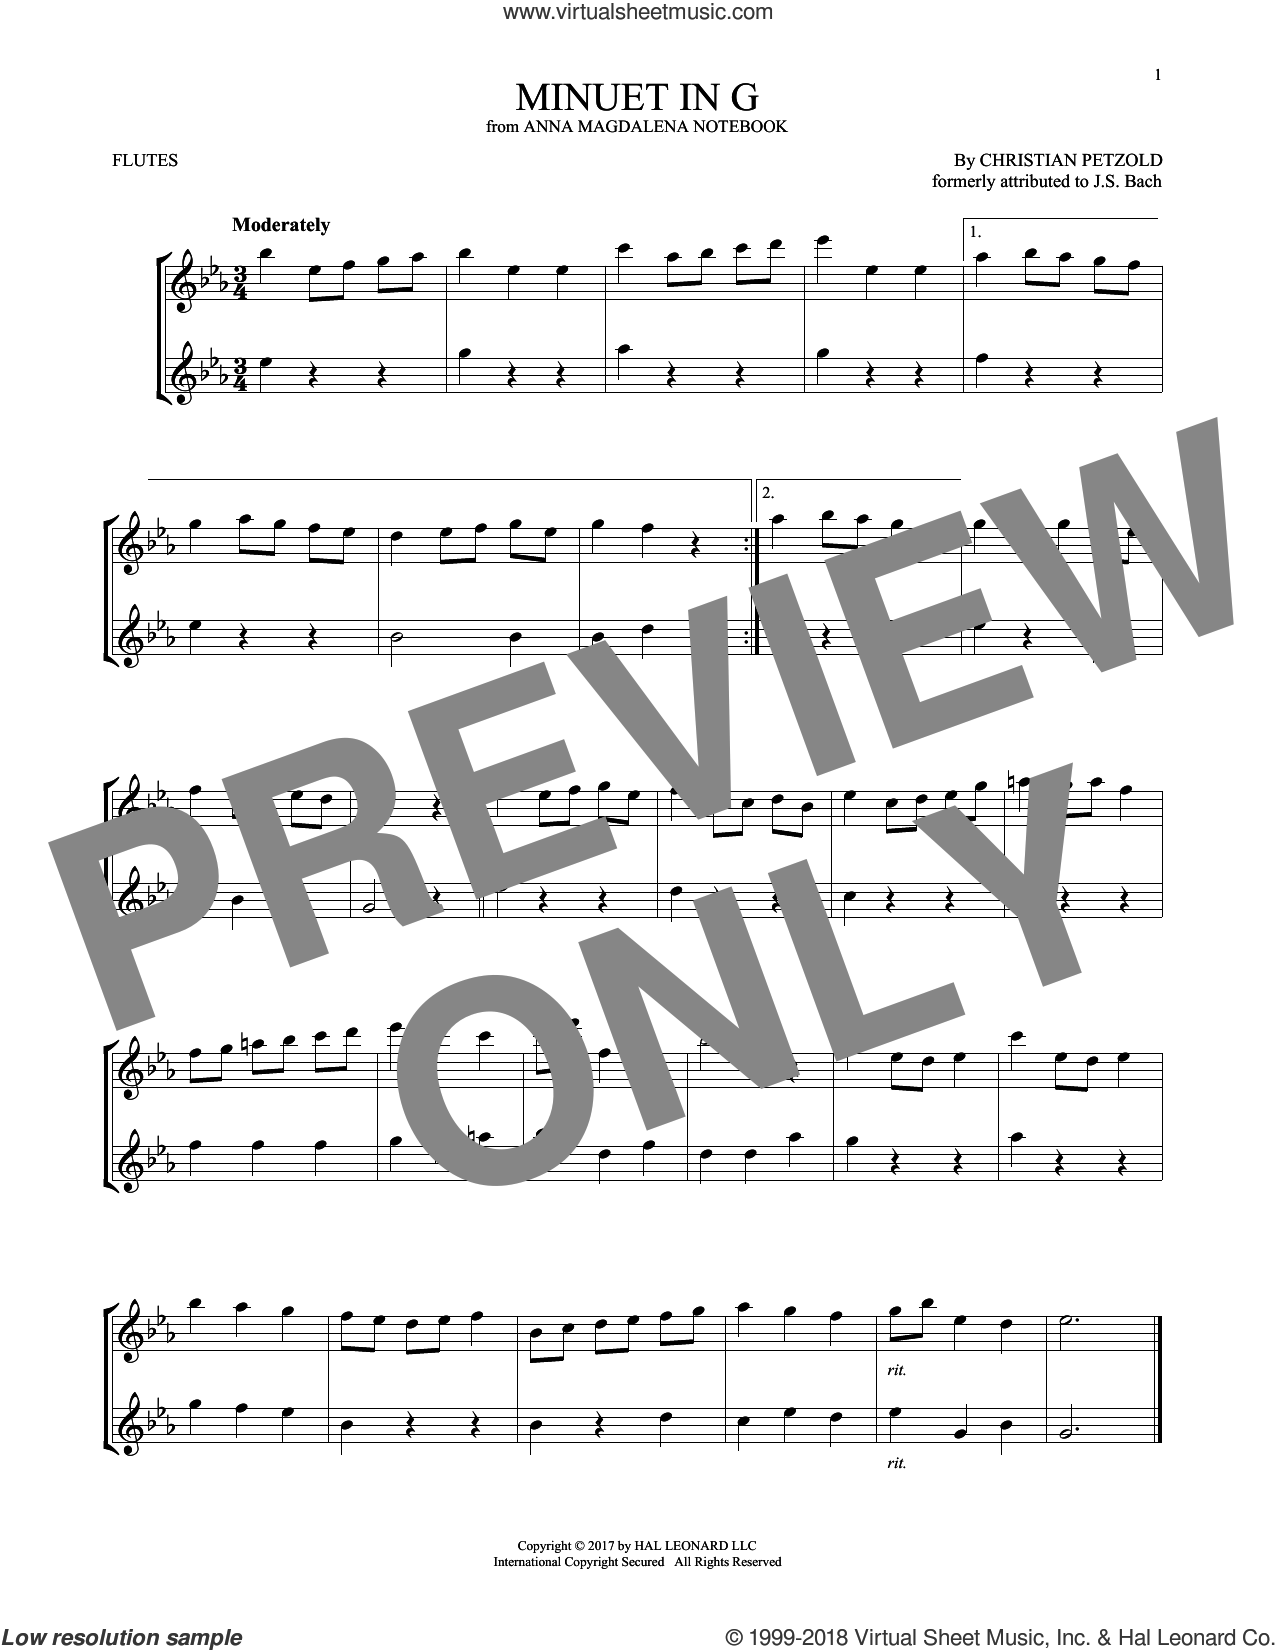 Minuet In G Major, BWV Anh. 114 sheet music for two flutes (duets) by Christian Petzold, classical score, intermediate skill level